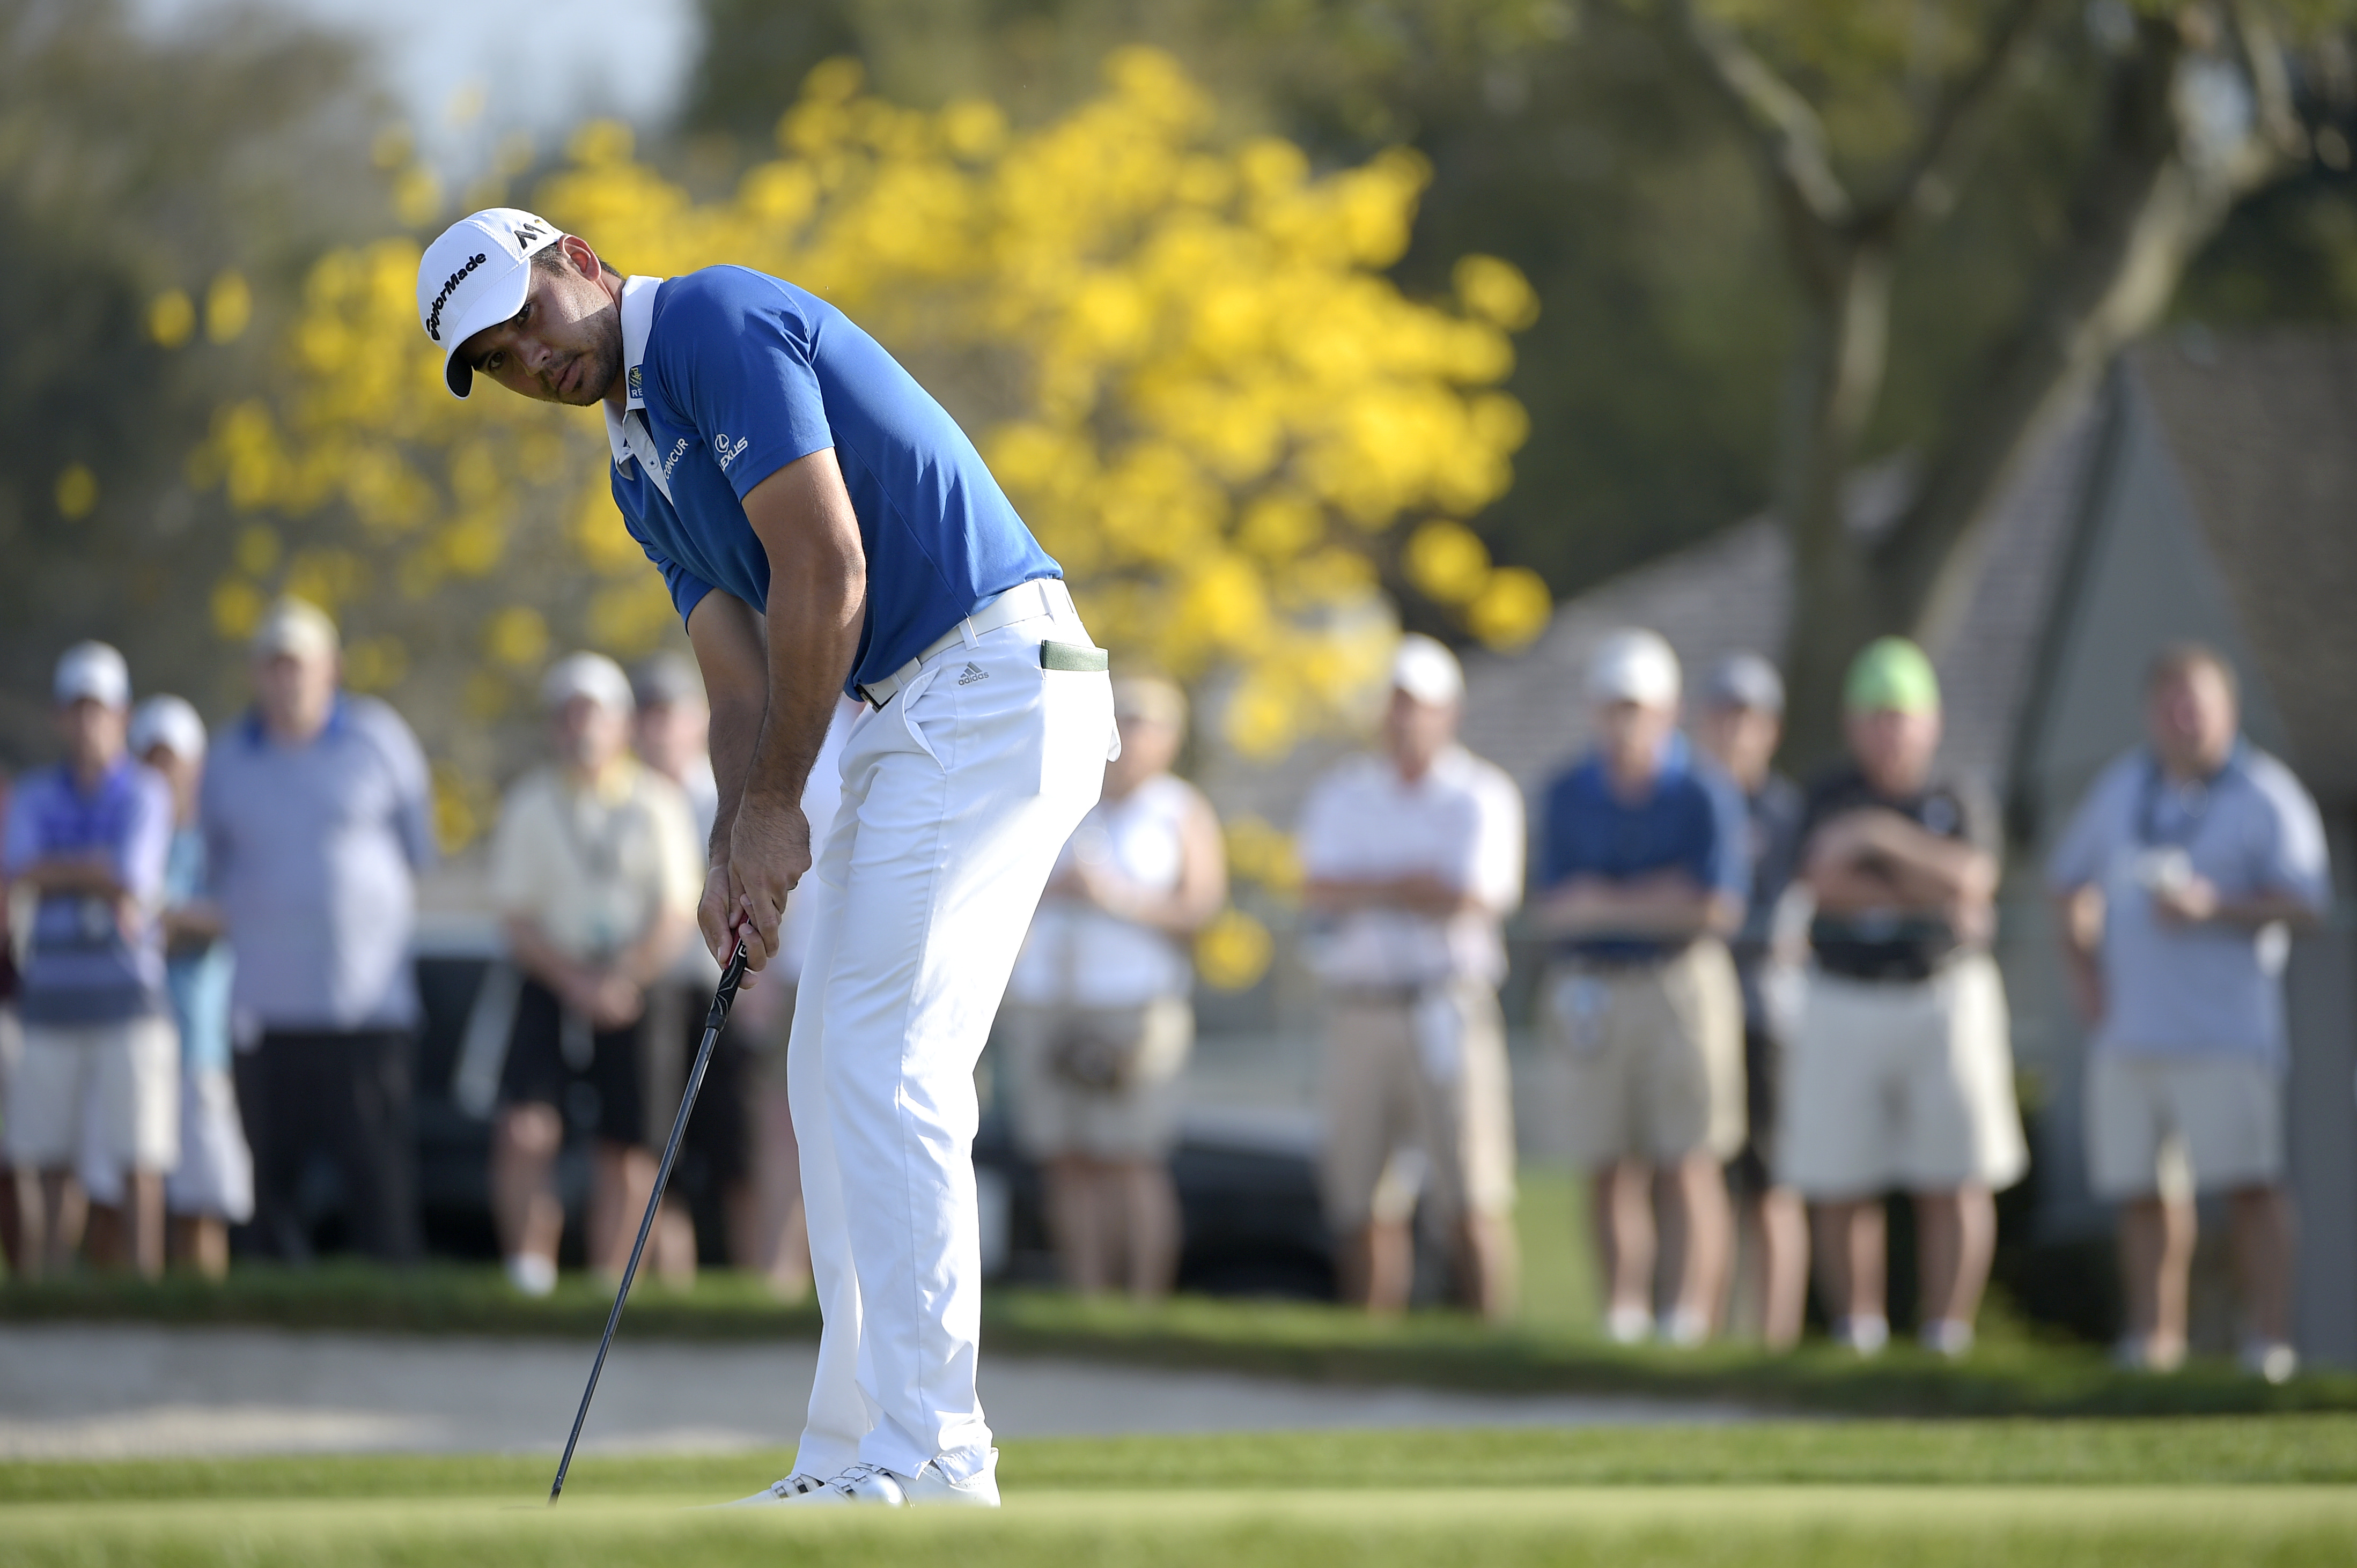 Jason Day, of Australia, watches his putt on the 13th green during the second round of the Arnold Palmer Invitational golf tournament in Orlando, Fla., Friday, March 18, 2016. (AP Photo/Phelan M. Ebenhack)